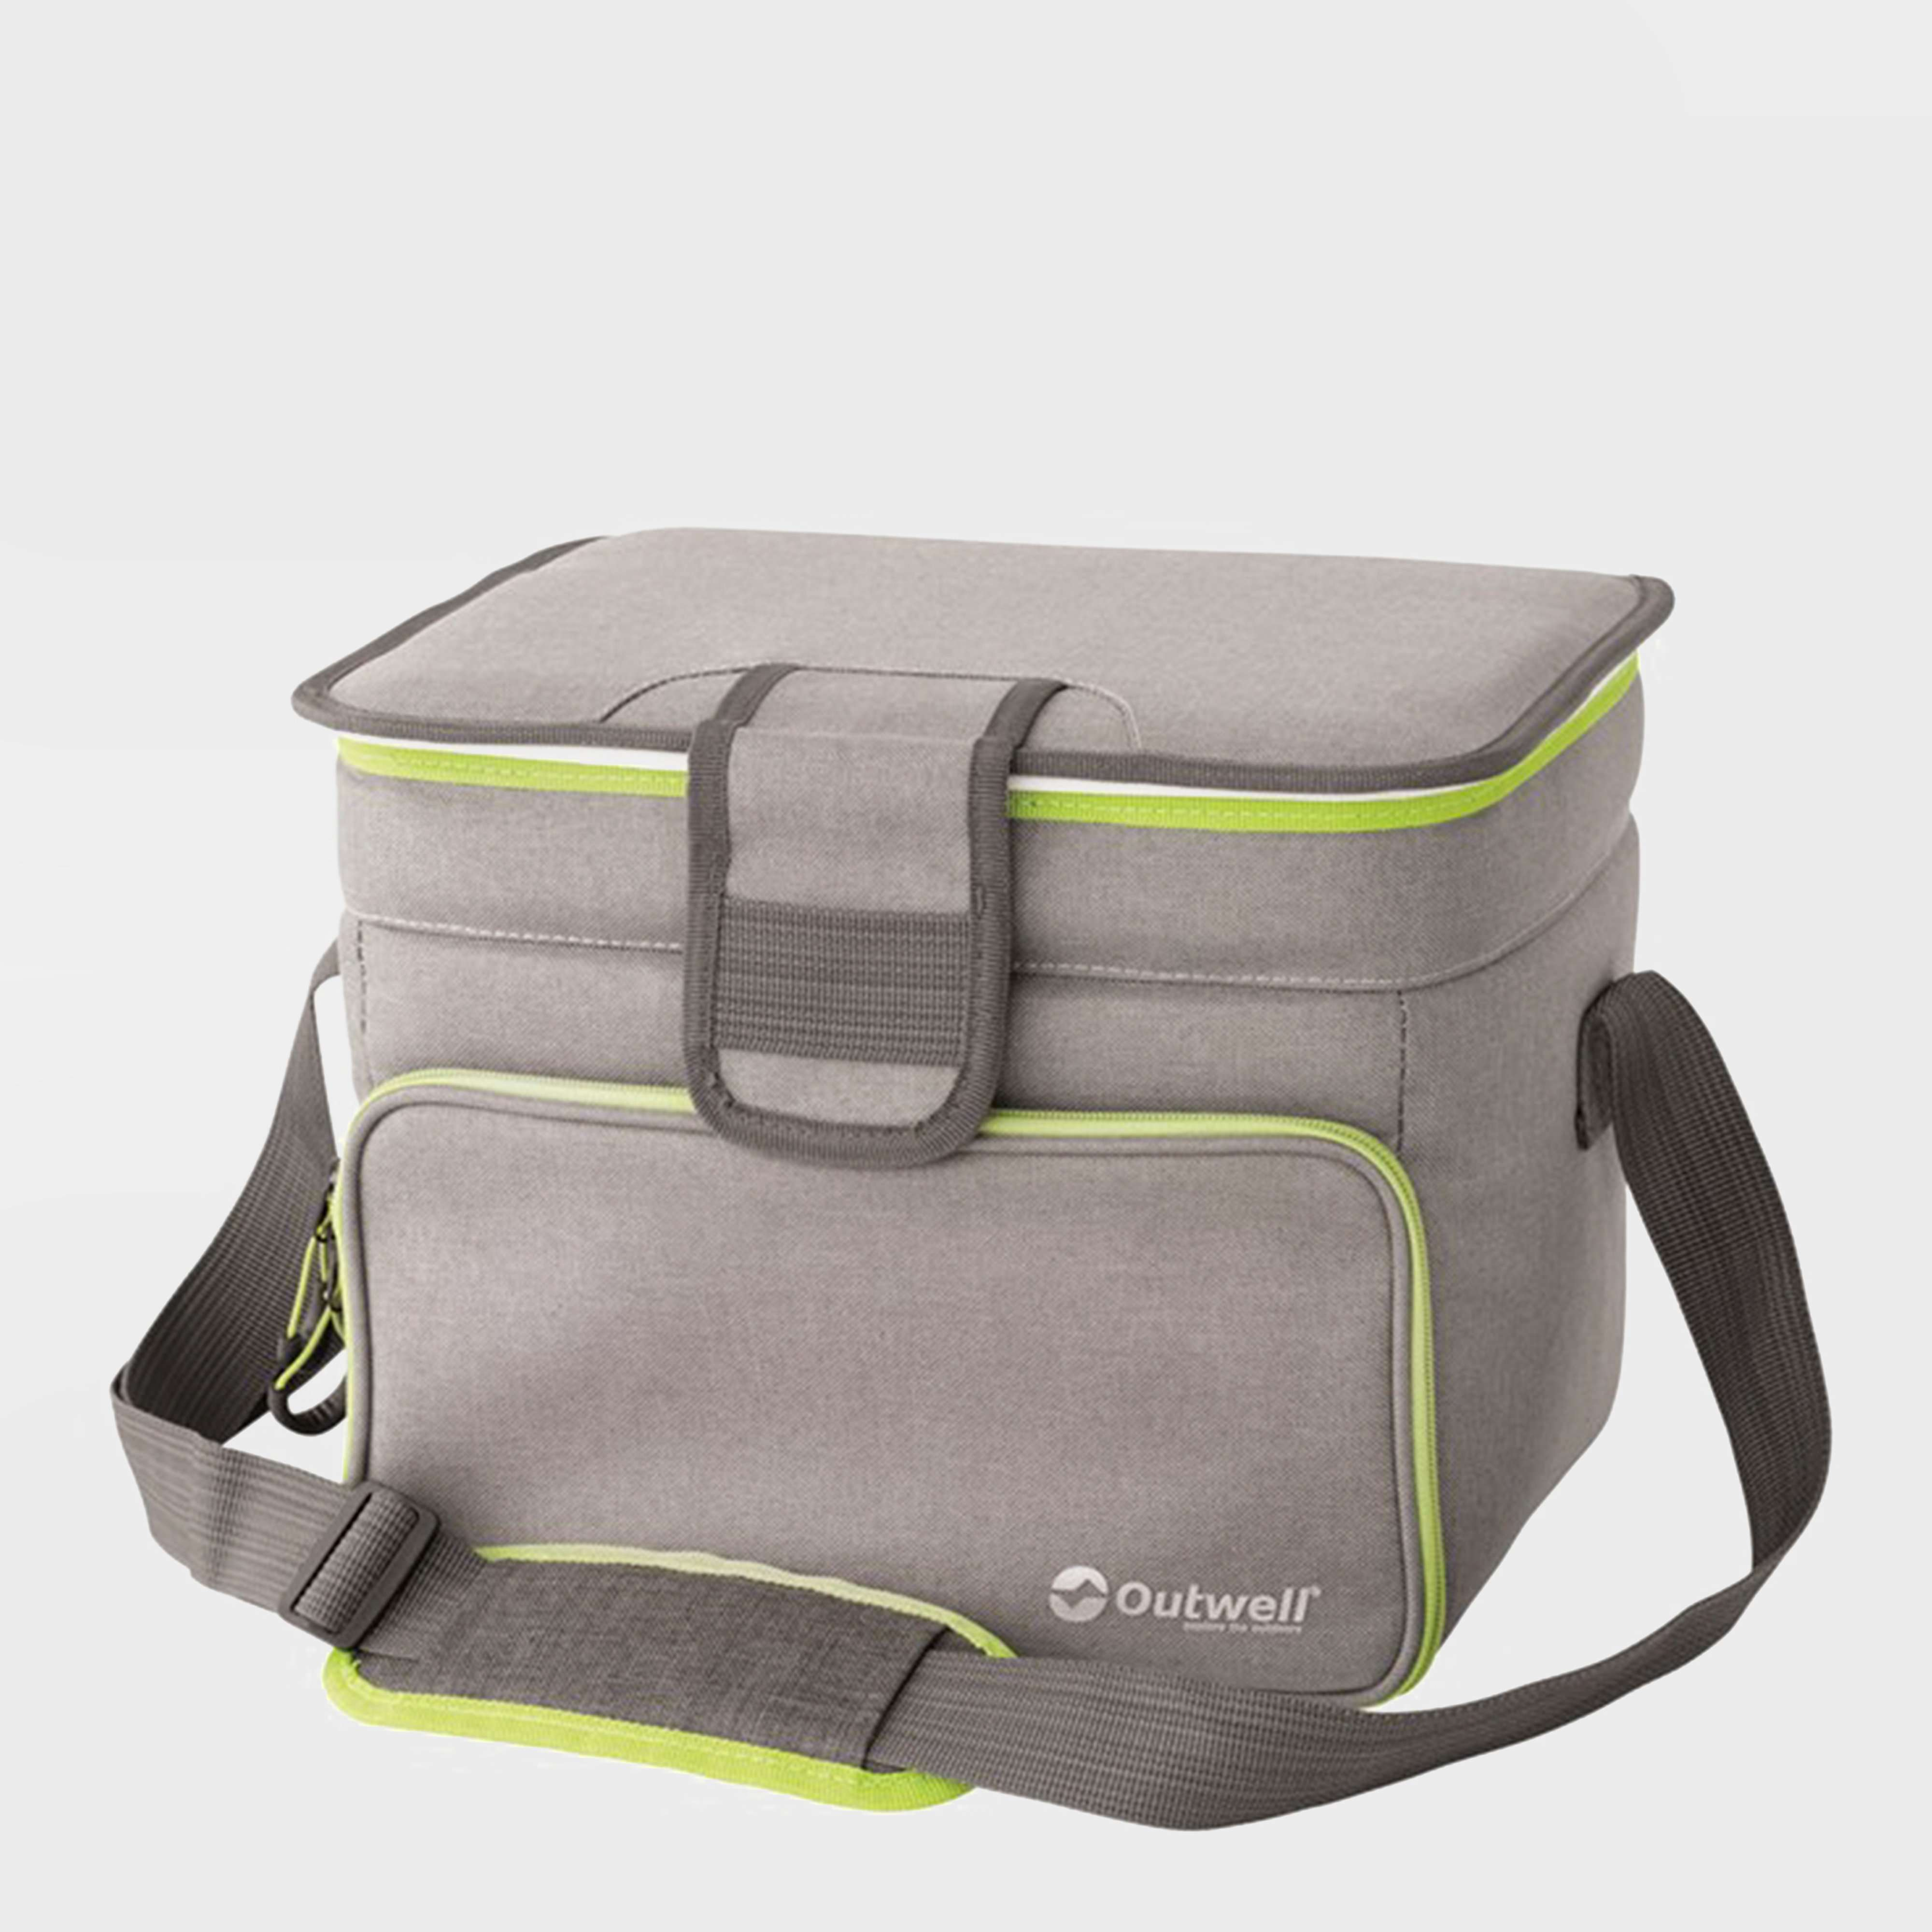 OUTWELL Albatross Cool Bag (Large)